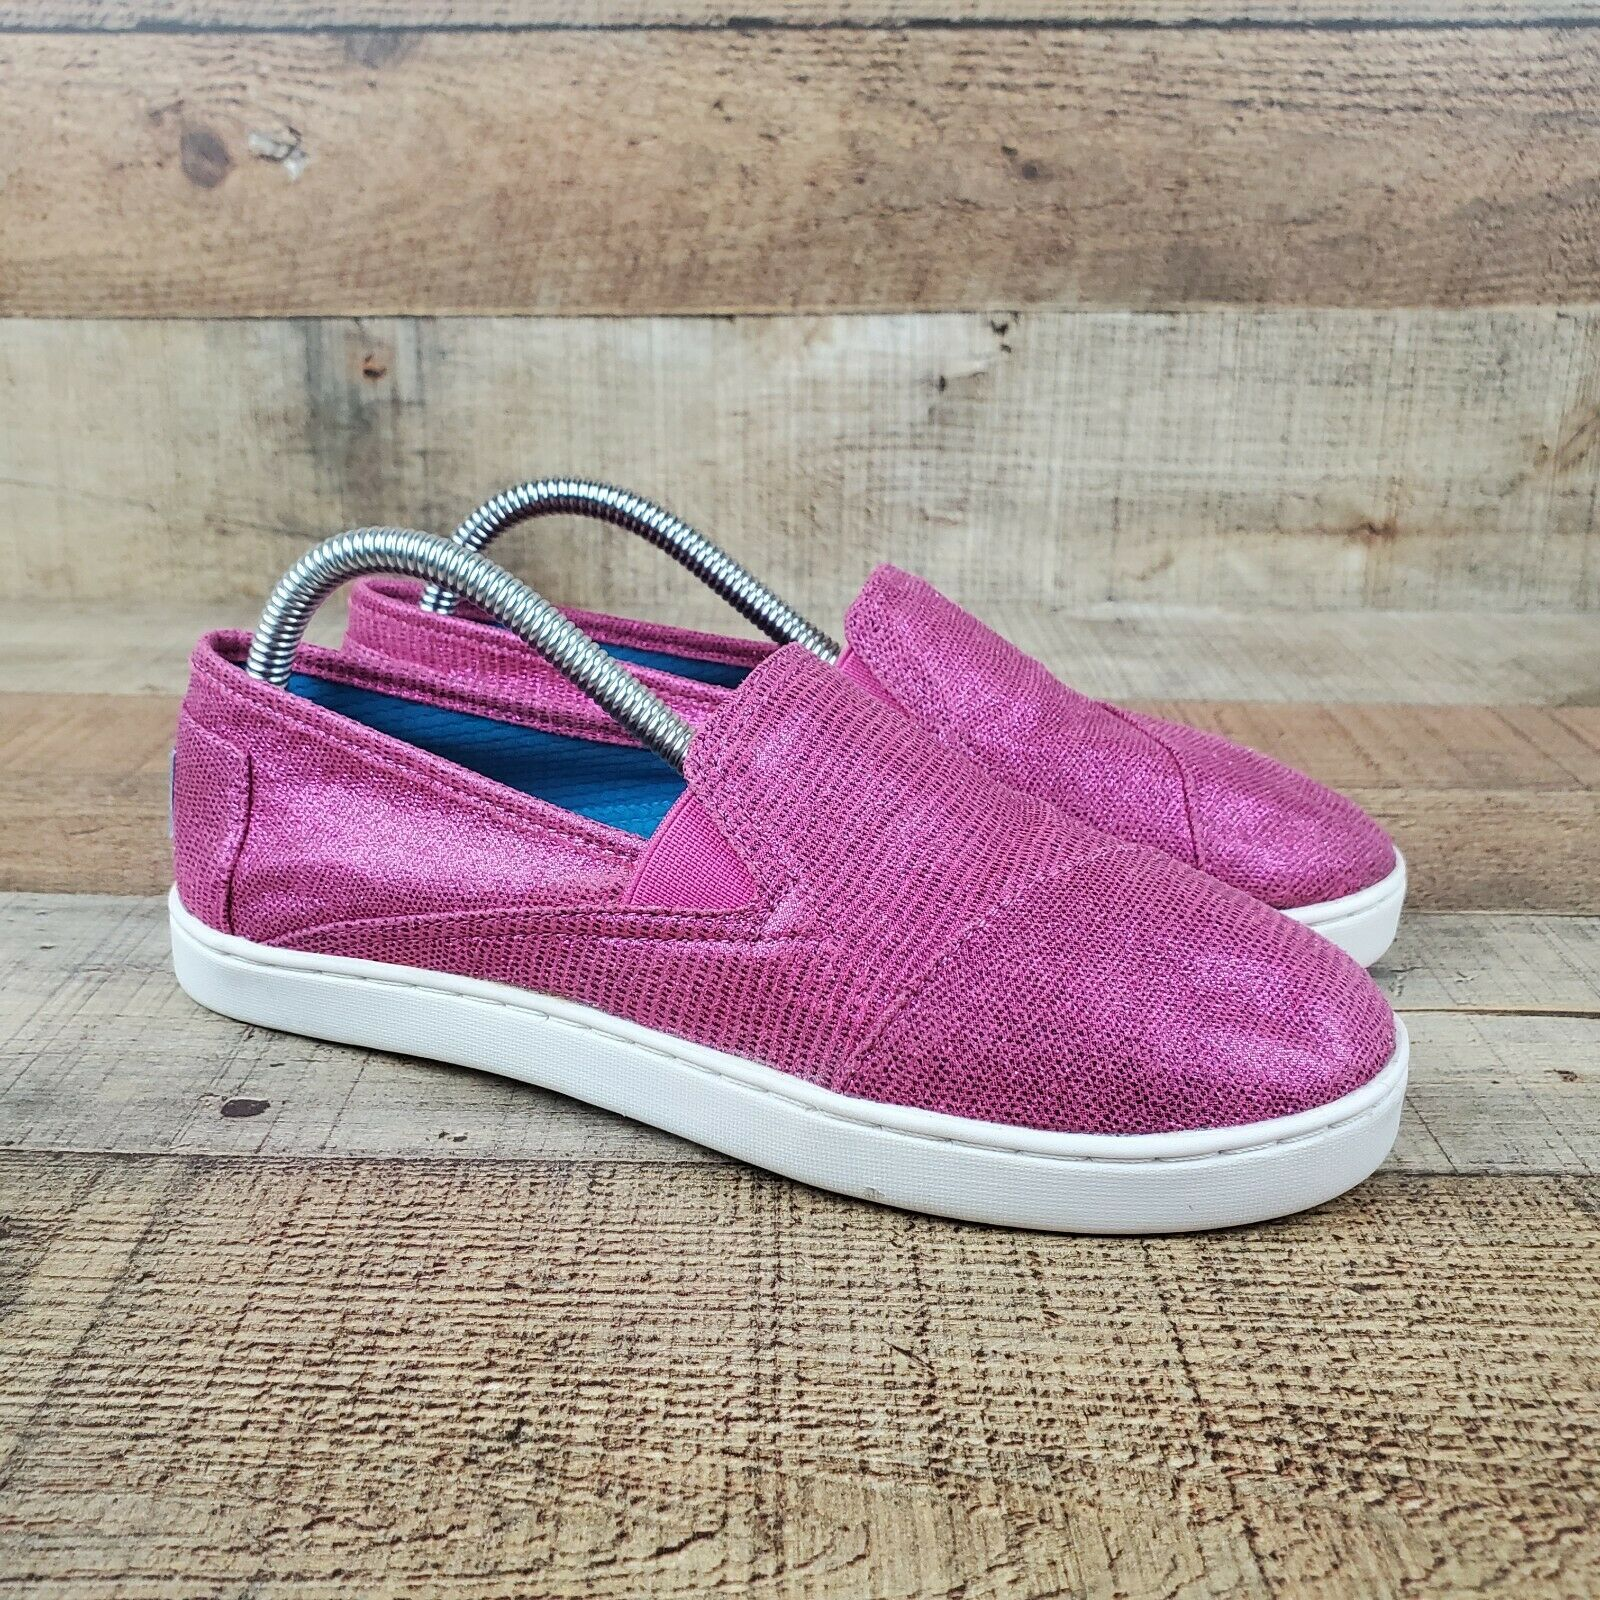 Toms Pink Women Sz 6 Slip On Comfort Shoes Shiny Classic Sneakers Casual Shoes